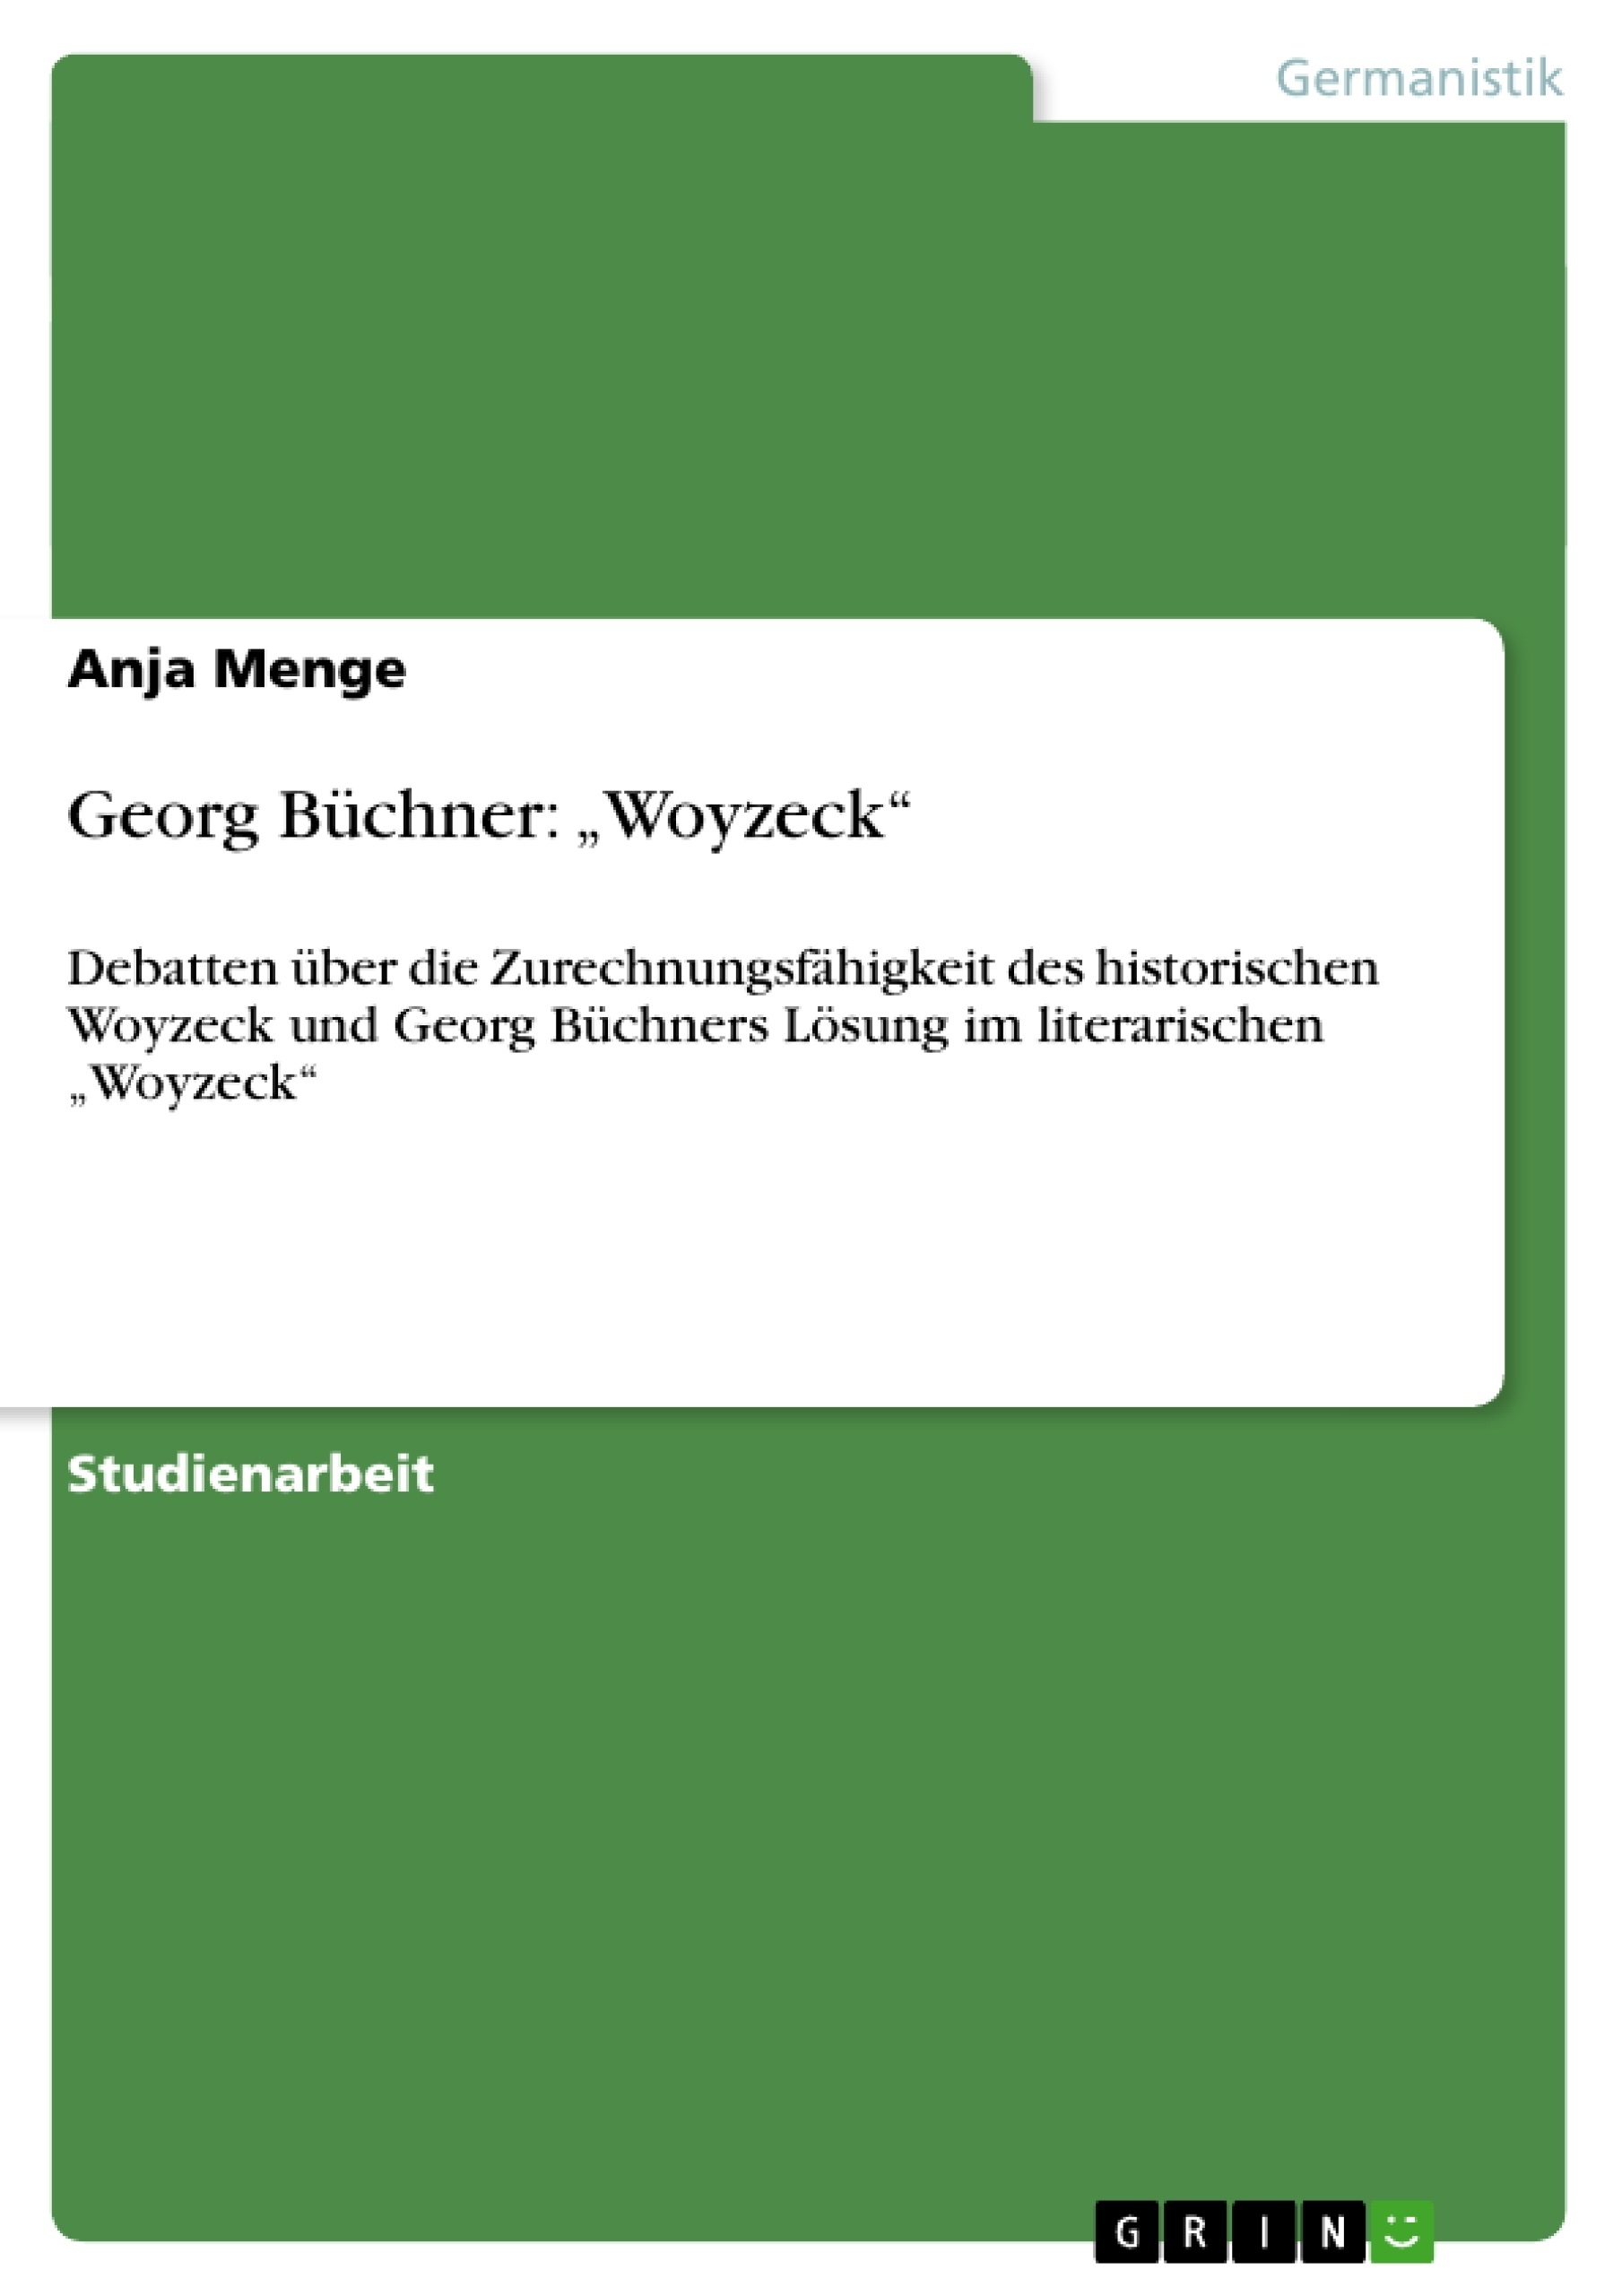 woyzeck essays Twit week 6 lecture #6: woyzeck study guide by summer_tiley includes 16 questions covering vocabulary, terms and more quizlet flashcards, activities and games help you improve your grades.